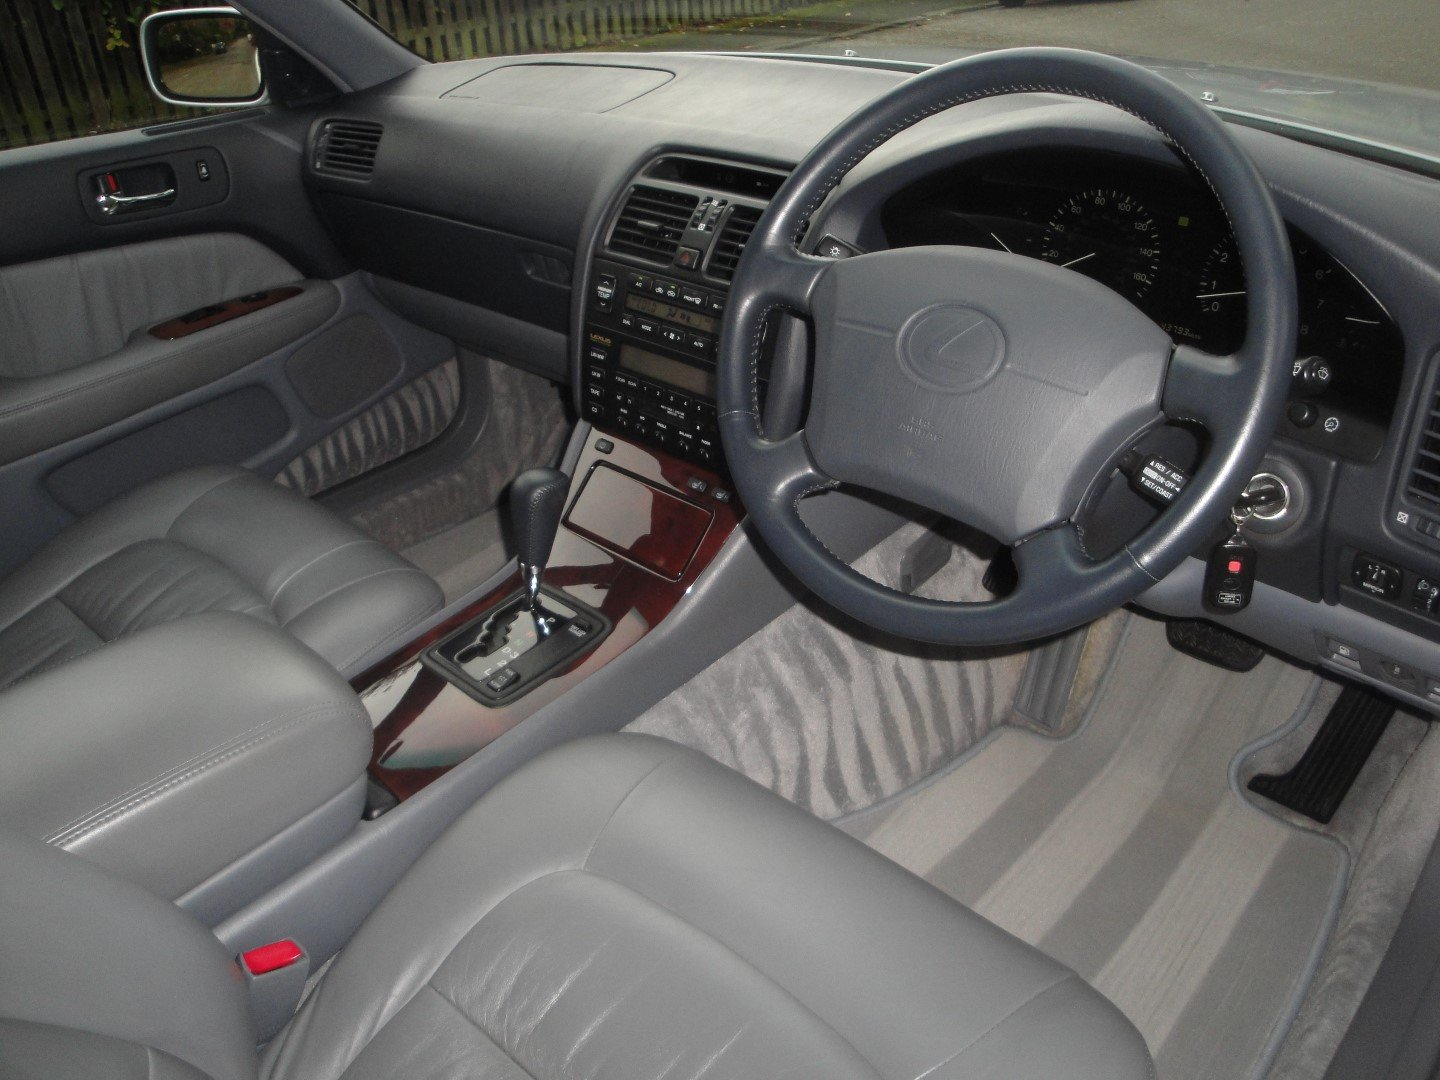 1997 Lexus LS400 Immaculate Low Mileage For Sale (picture 3 of 6)